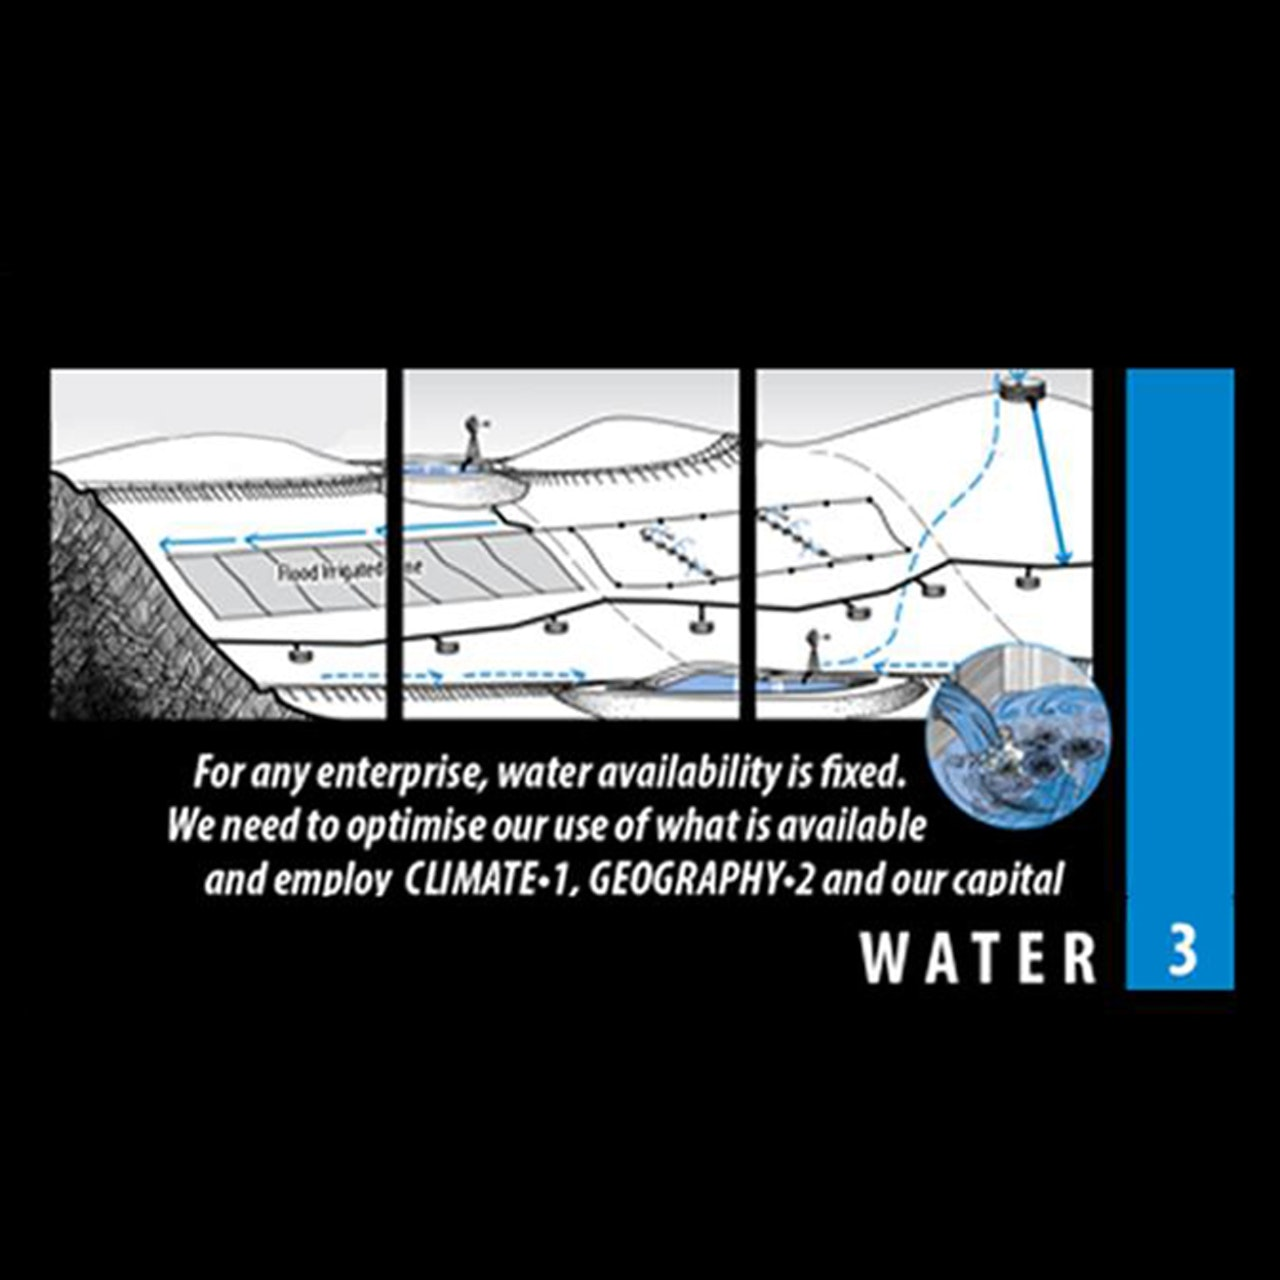 REGRARIANS HANDBOOK - 3. WATER